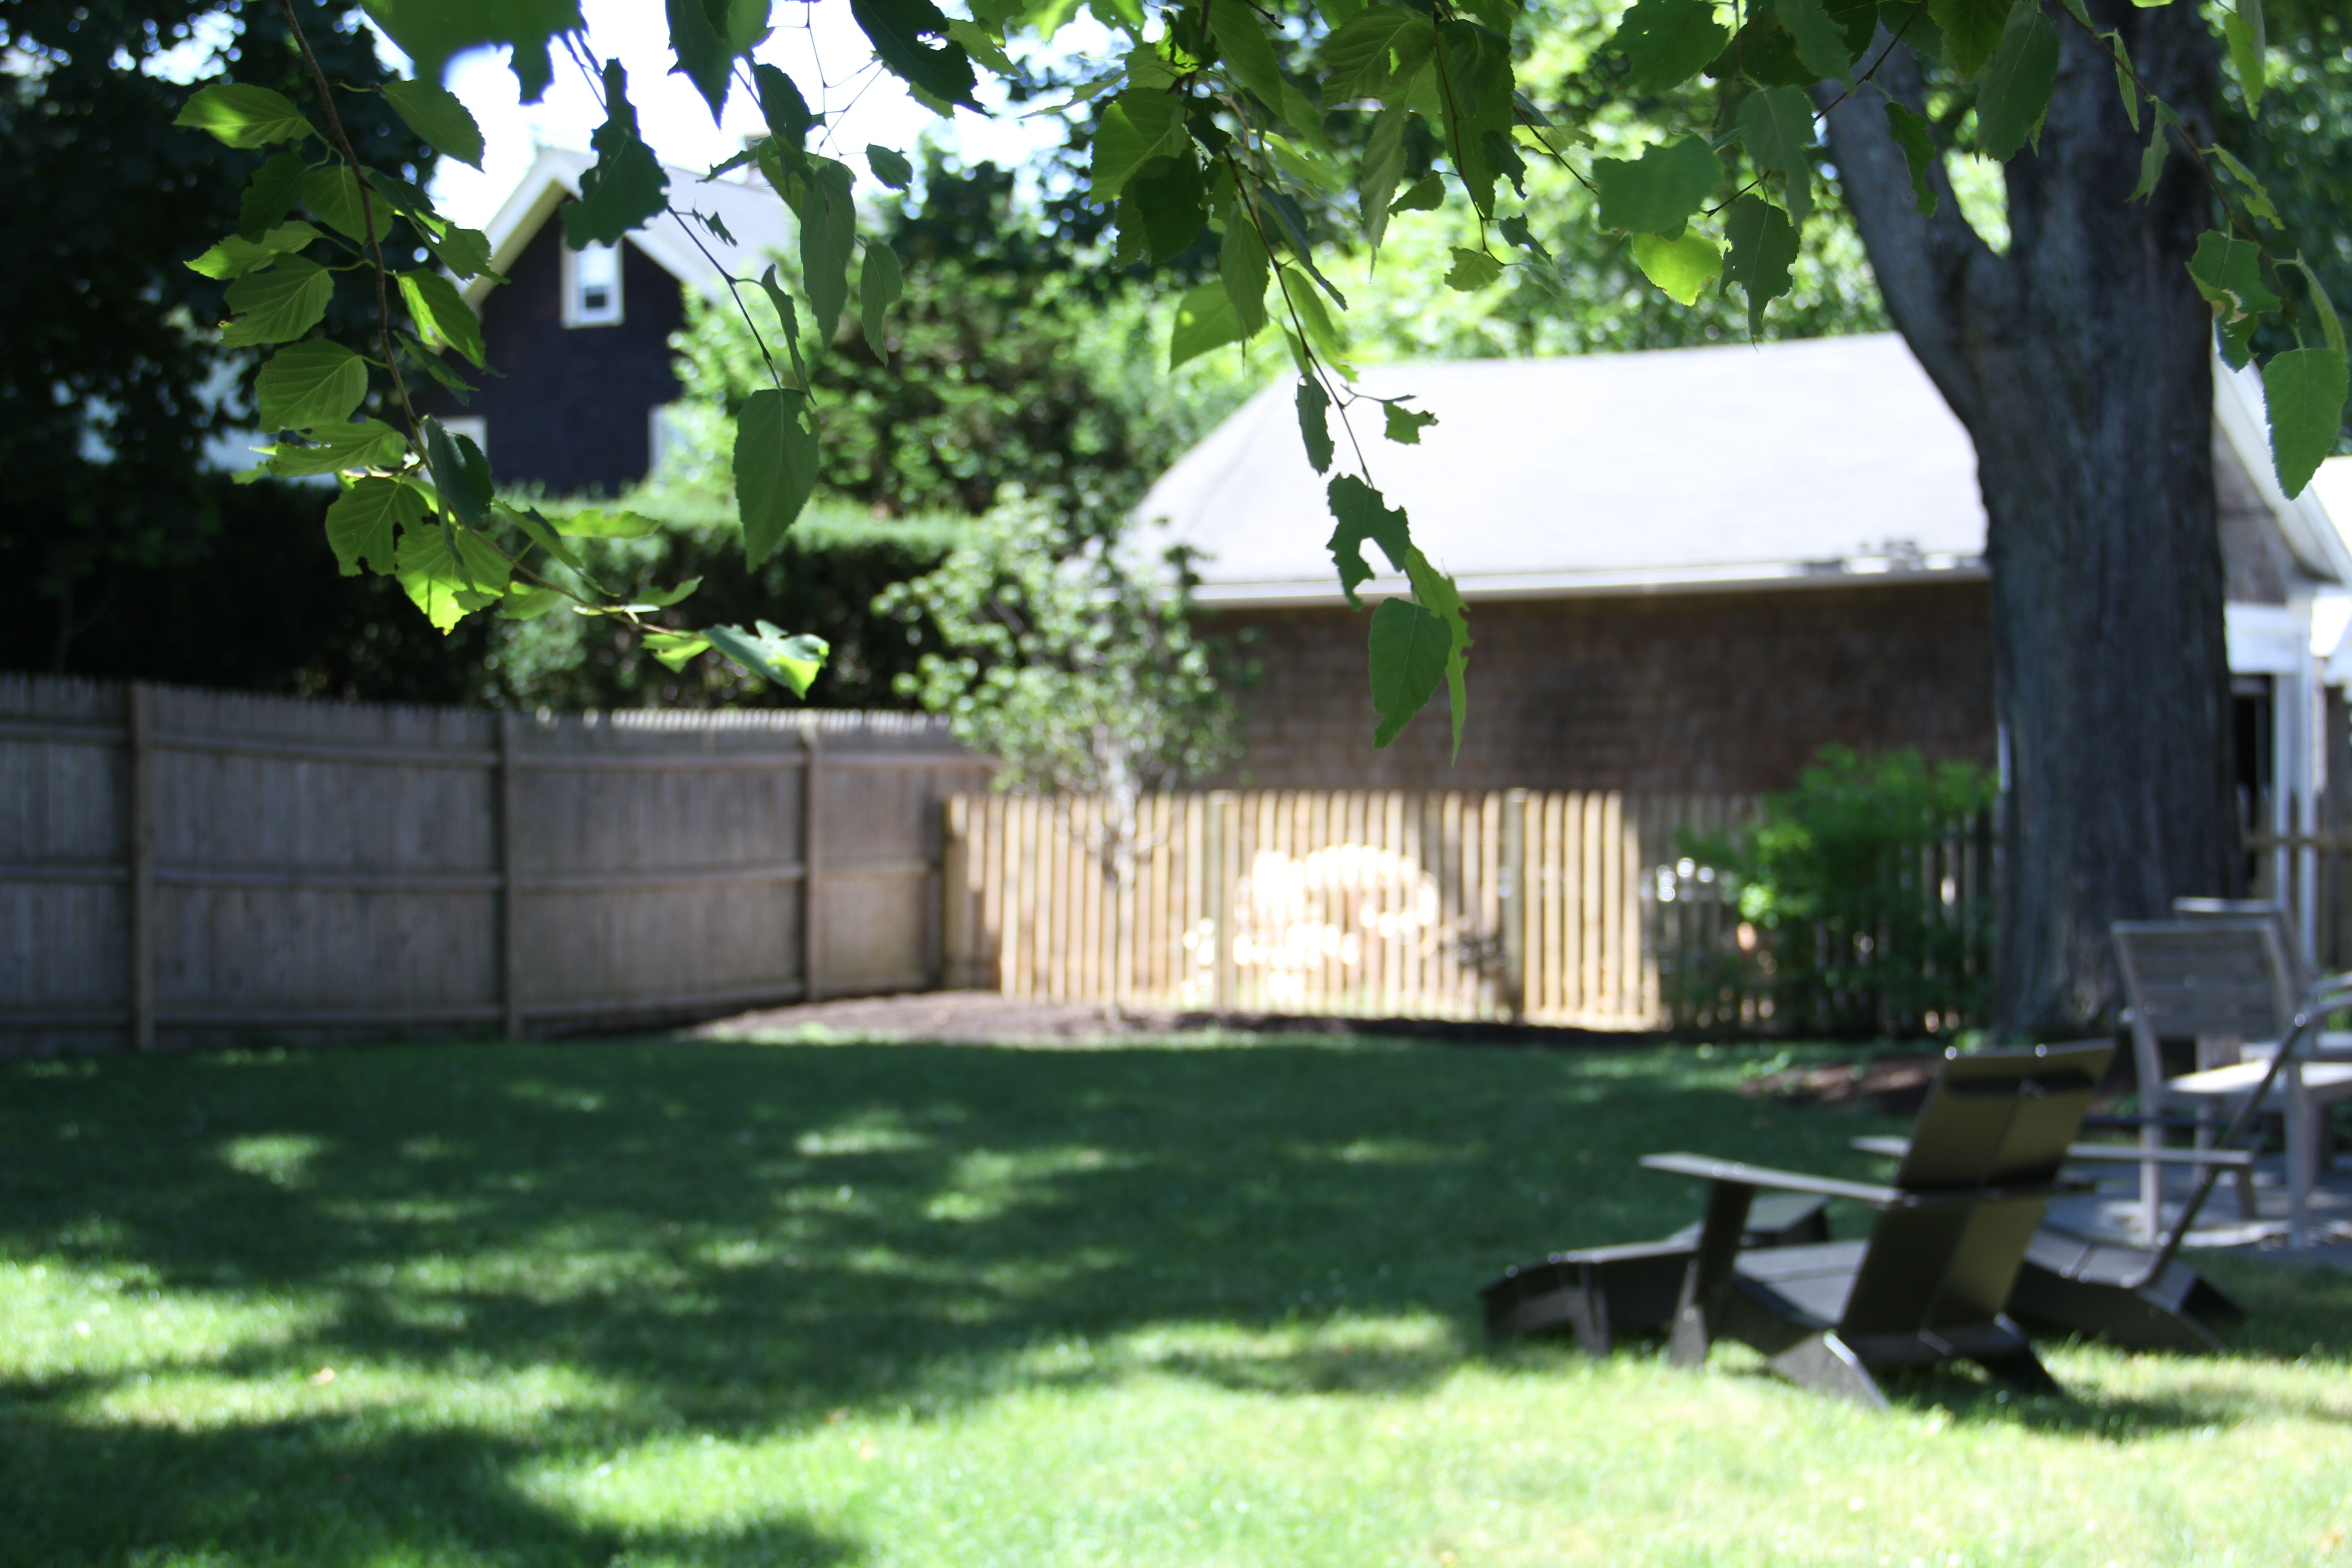 We're considering staining the fence white to match the house trim, and to help the bark of the tree stand out a bit better.